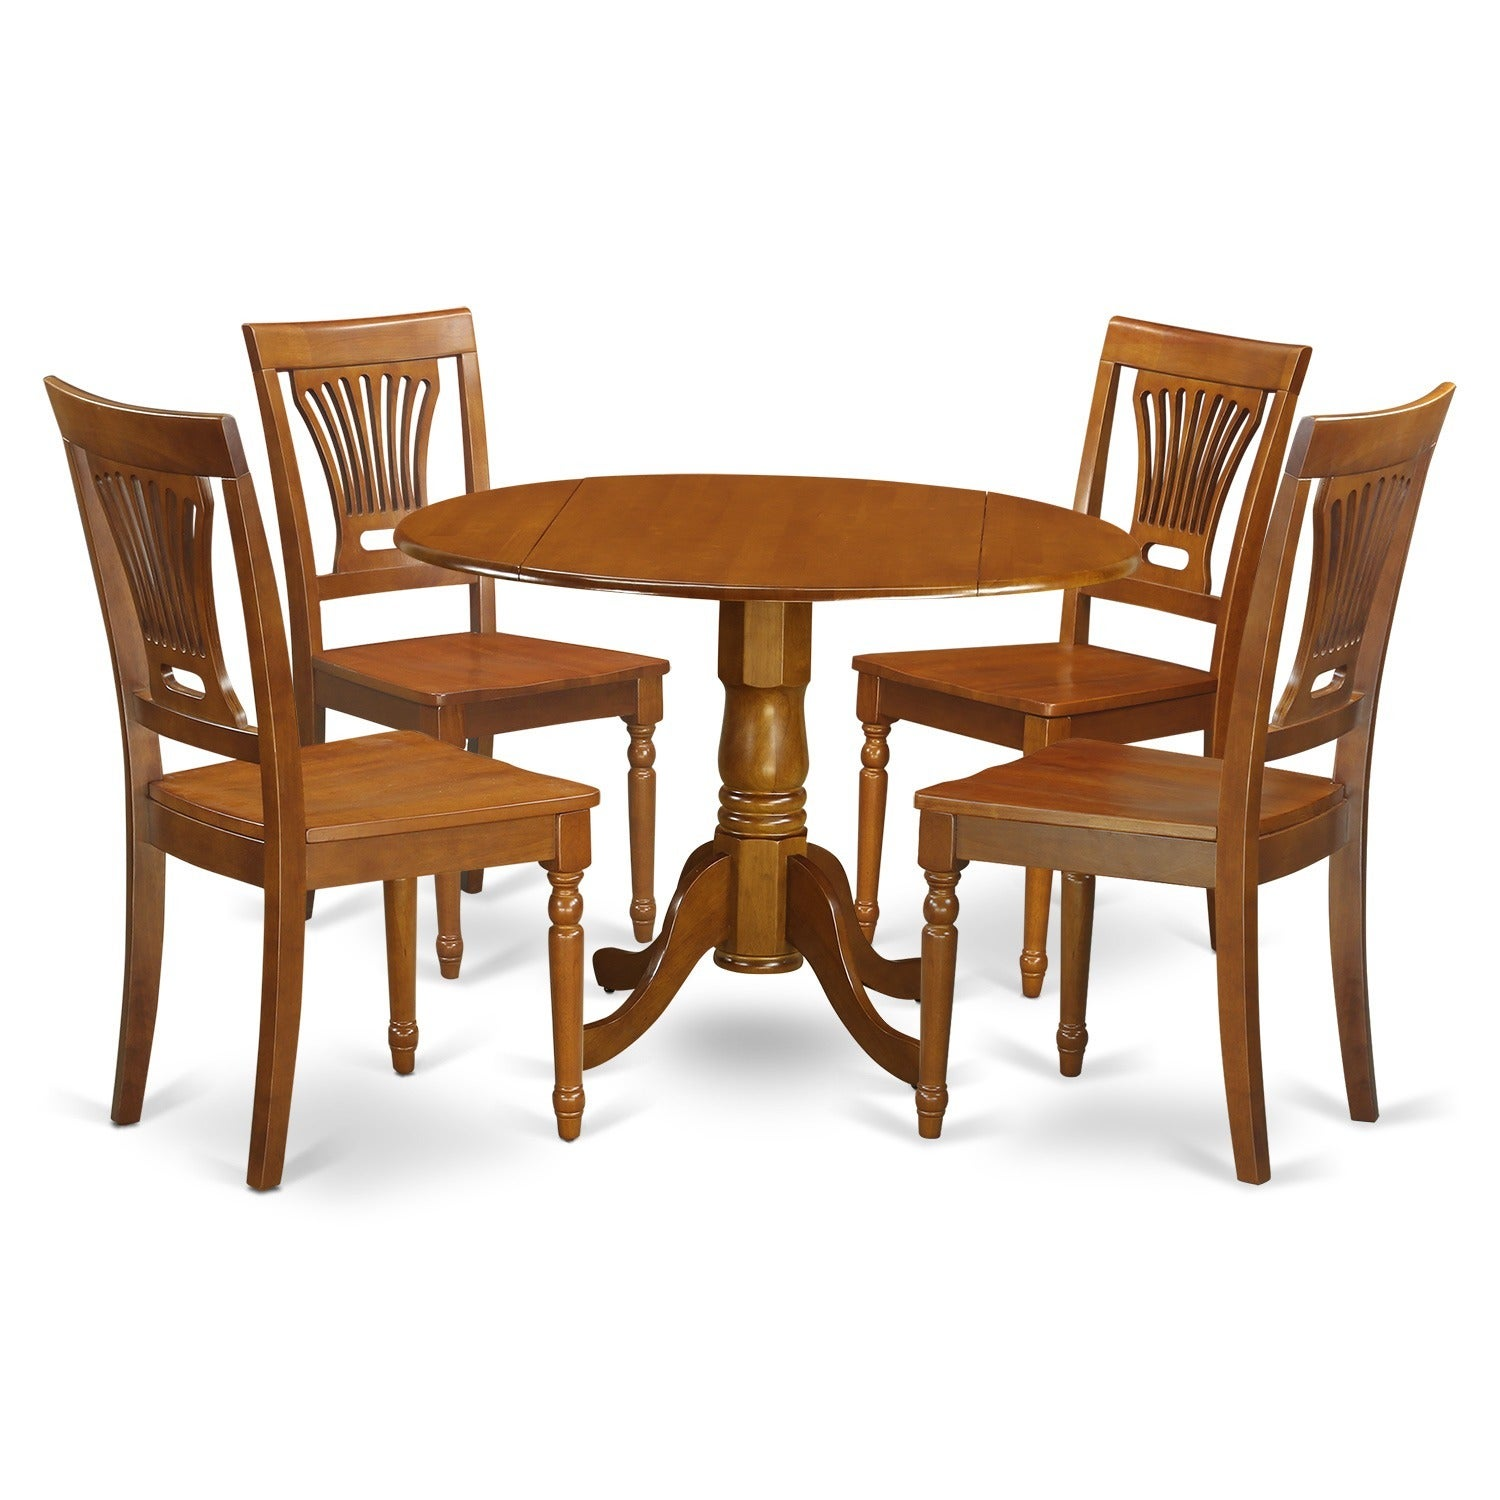 Shop Saddle Brown Round Table Plus 4 Dinette Chairs 5 Piece Dining Set    Free Shipping Today   Overstock.com   10201094